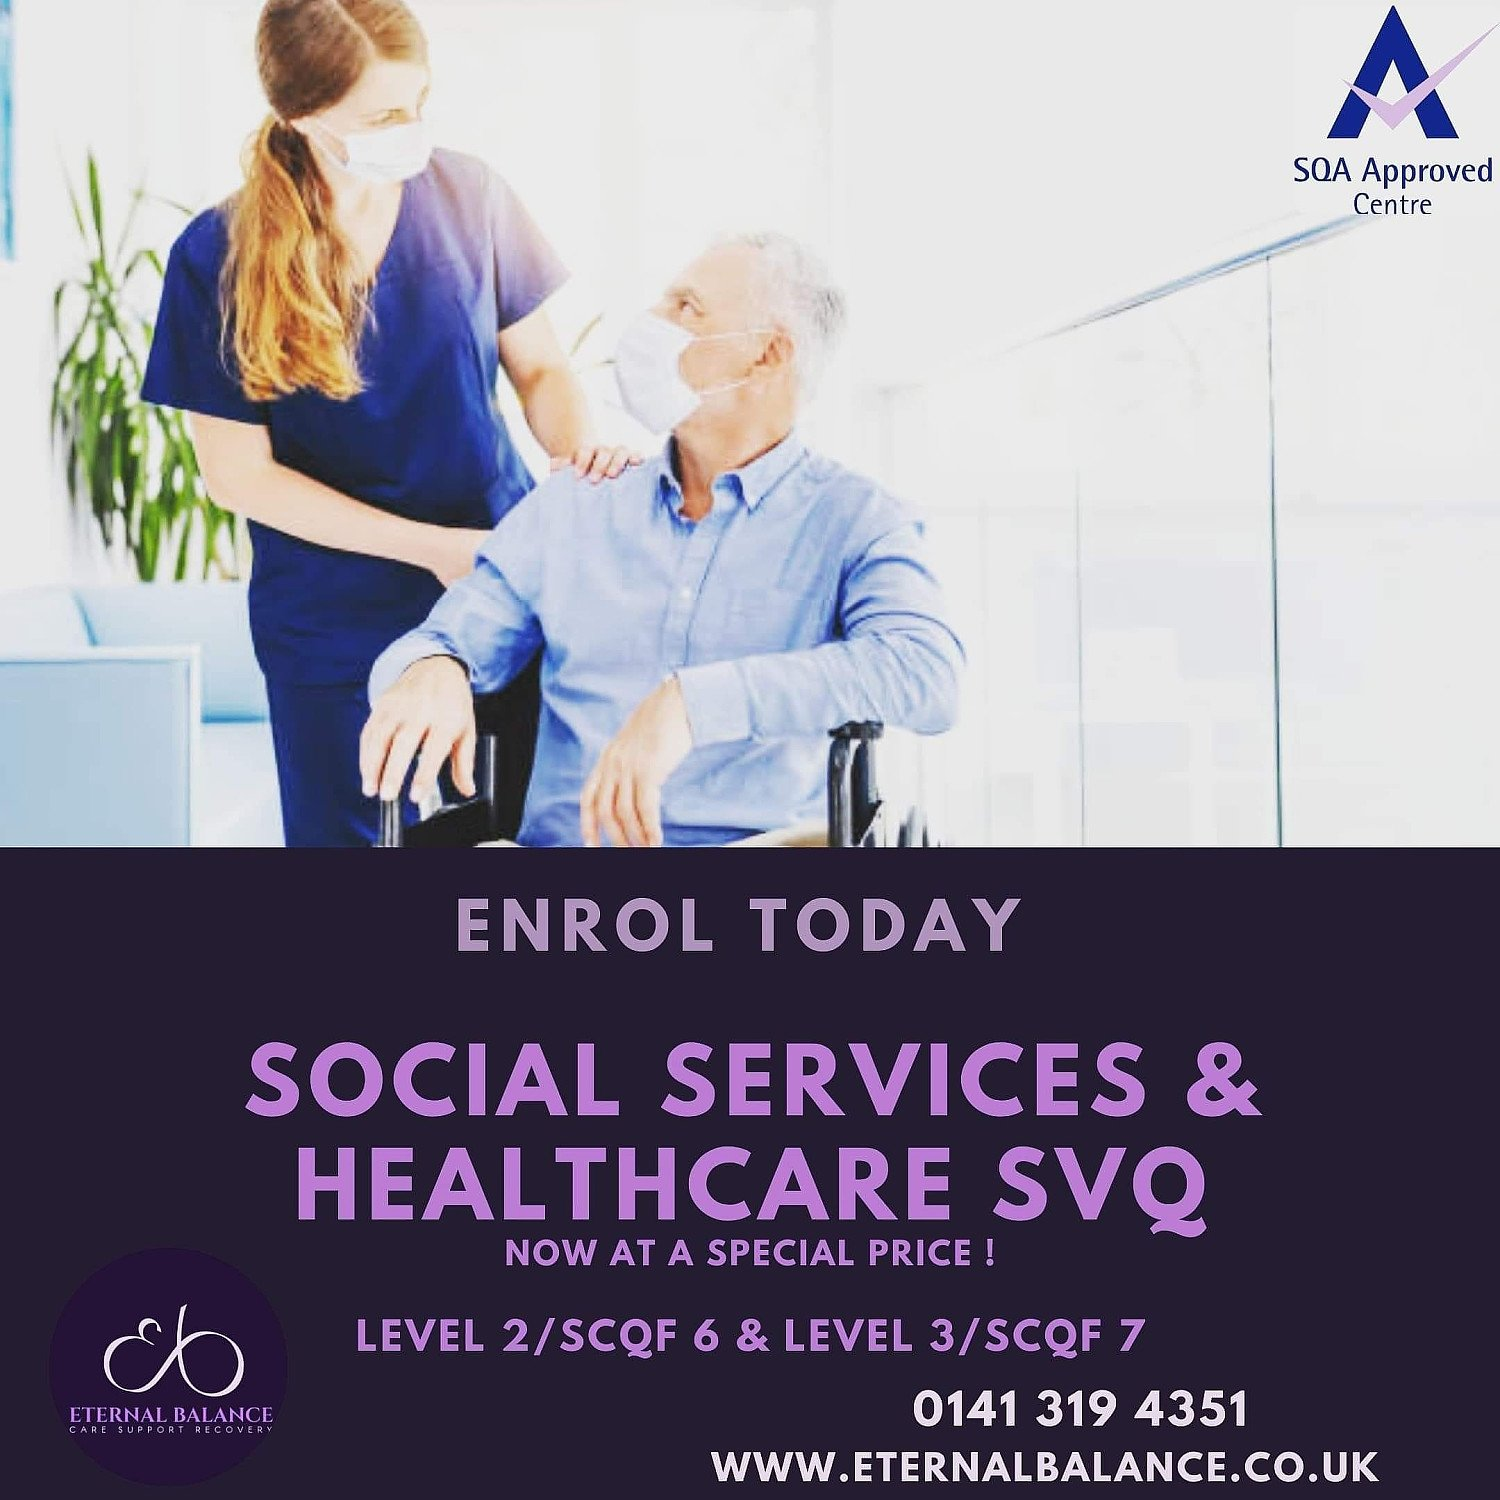 SVQ Social Services and Healthcare